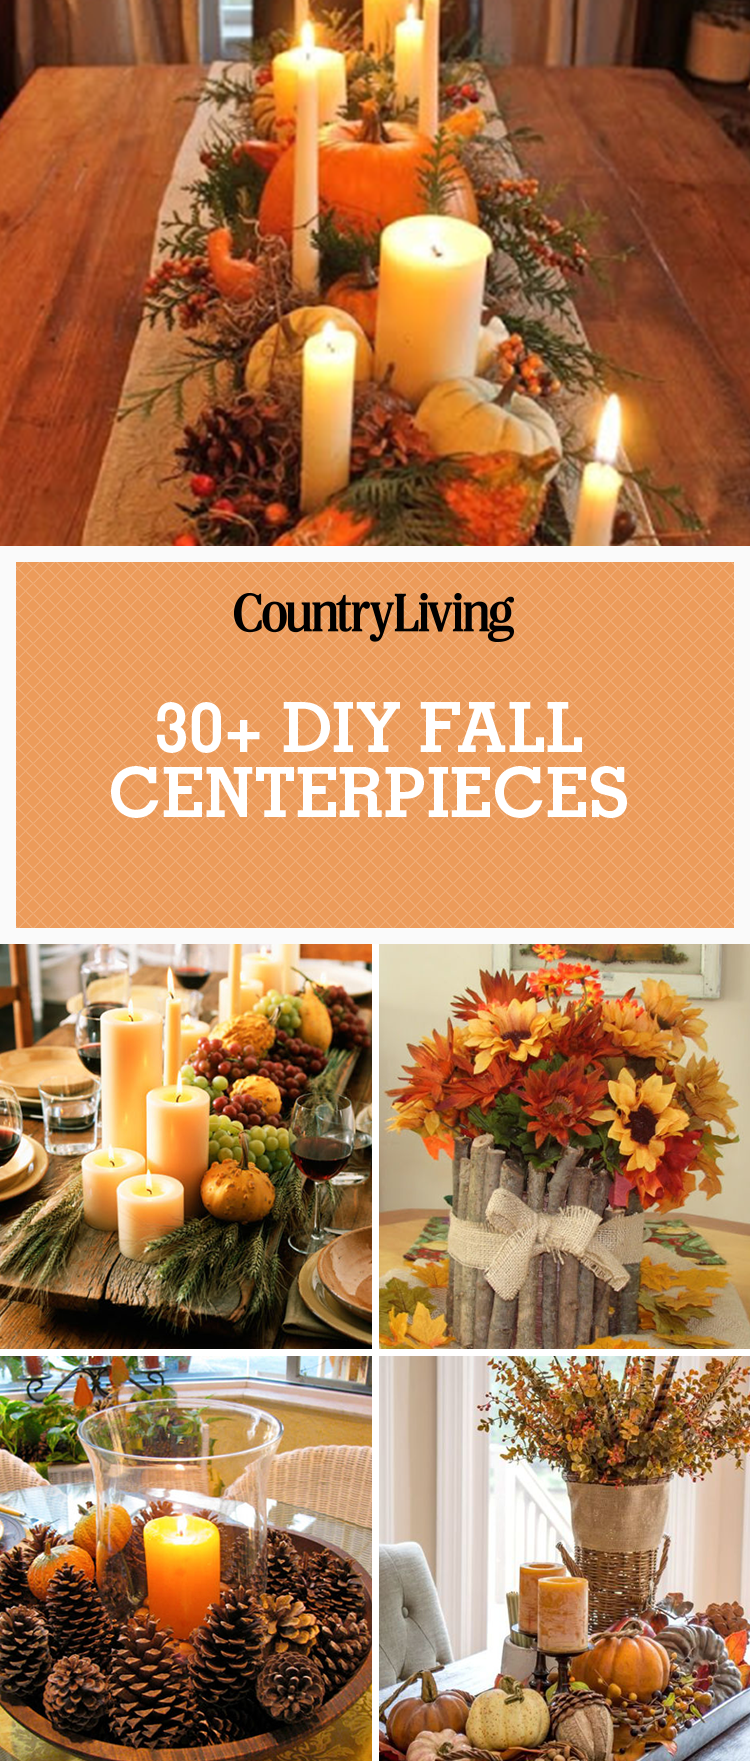 Diy Centerpieces For The Craftiest And